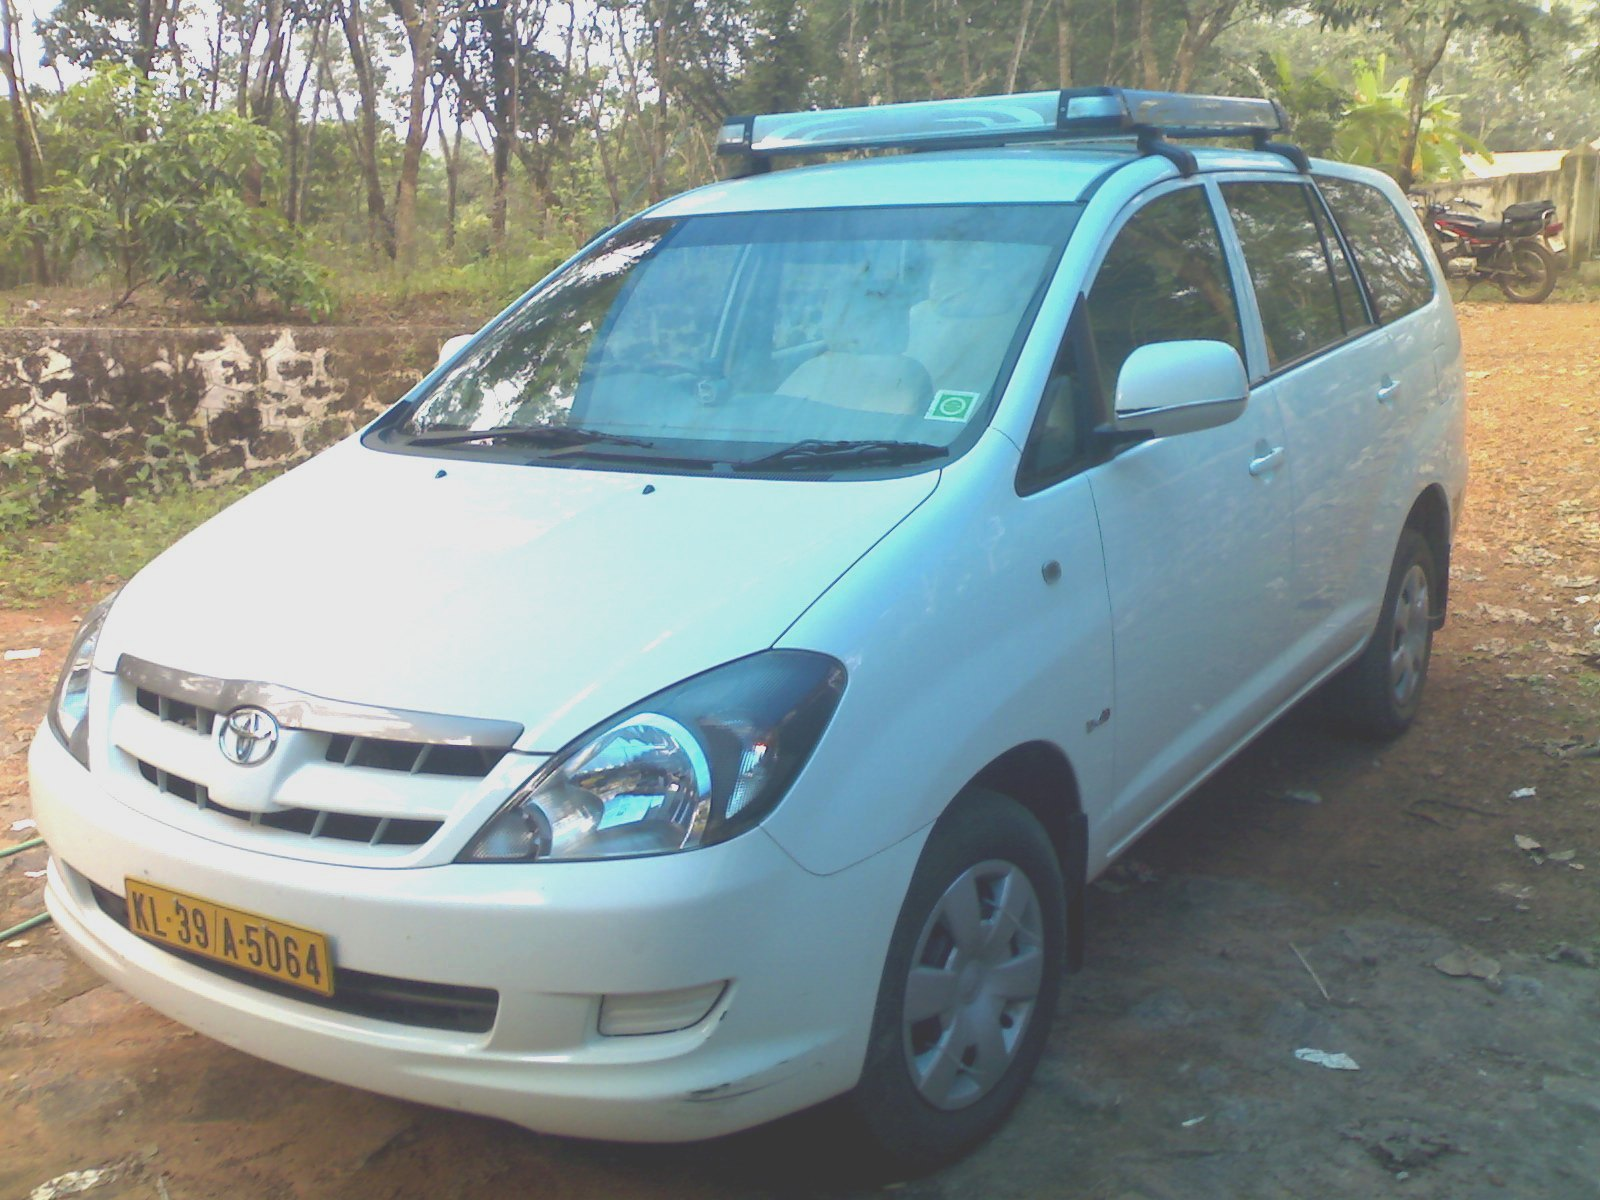 Kerala Taxis, Cochin Taxis, Cochin Cabs, Cabs in Cochin, Cochin Airport Taxi,Sabarimala Taxi from Cochin Airport